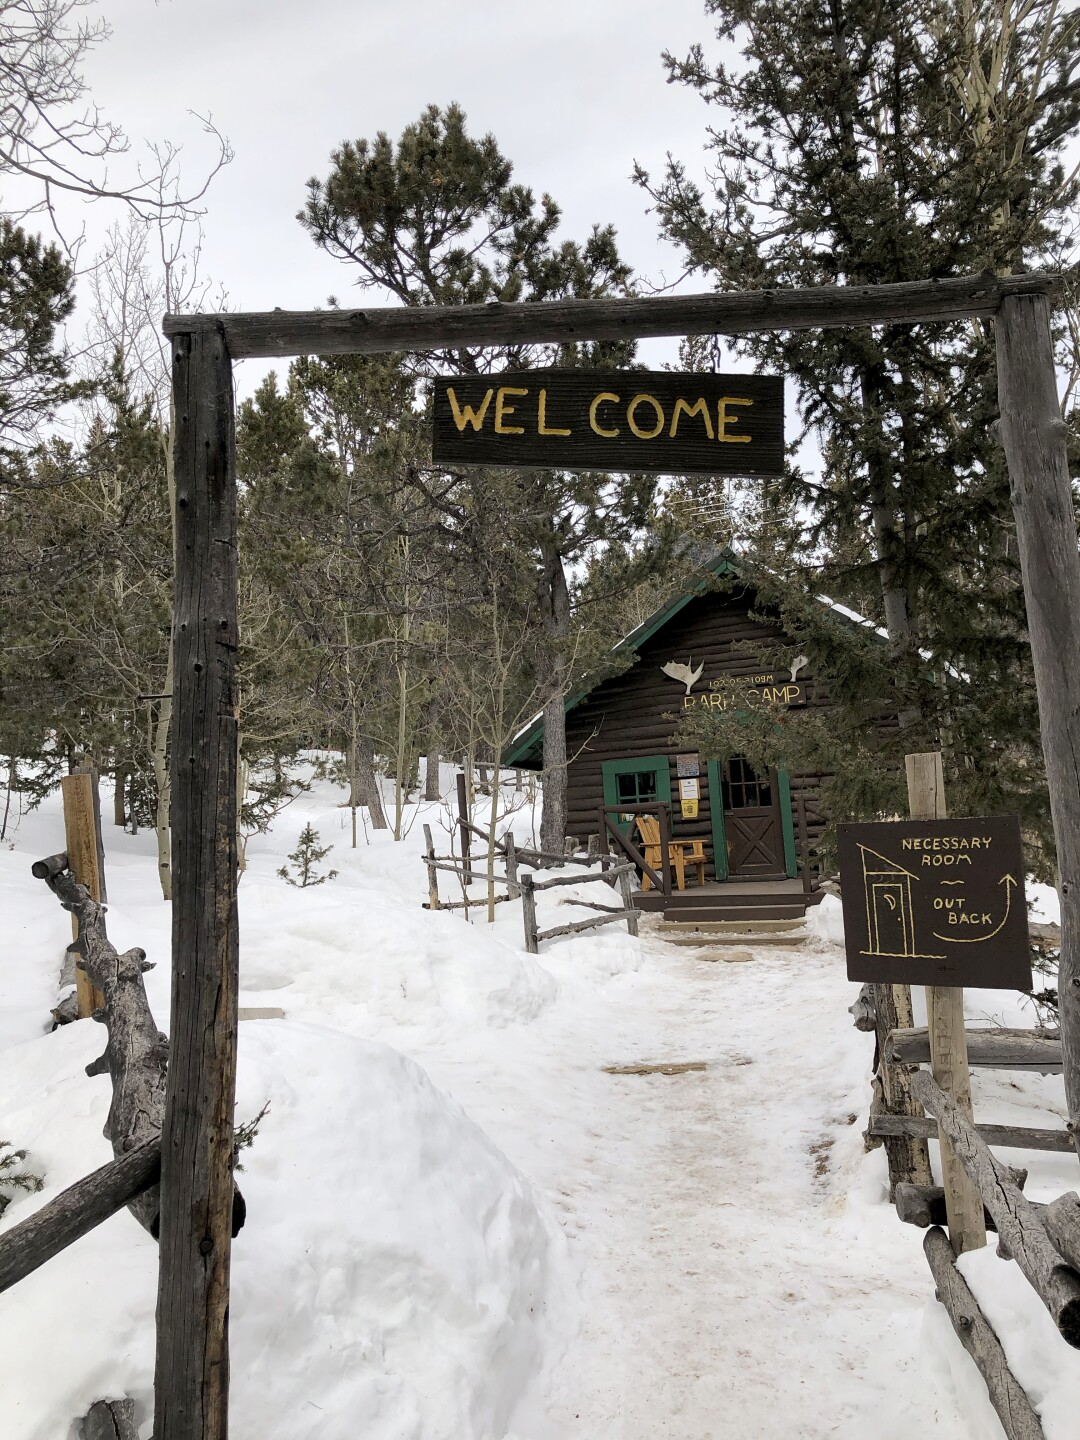 Barr Camp with welcome sign_February 2020